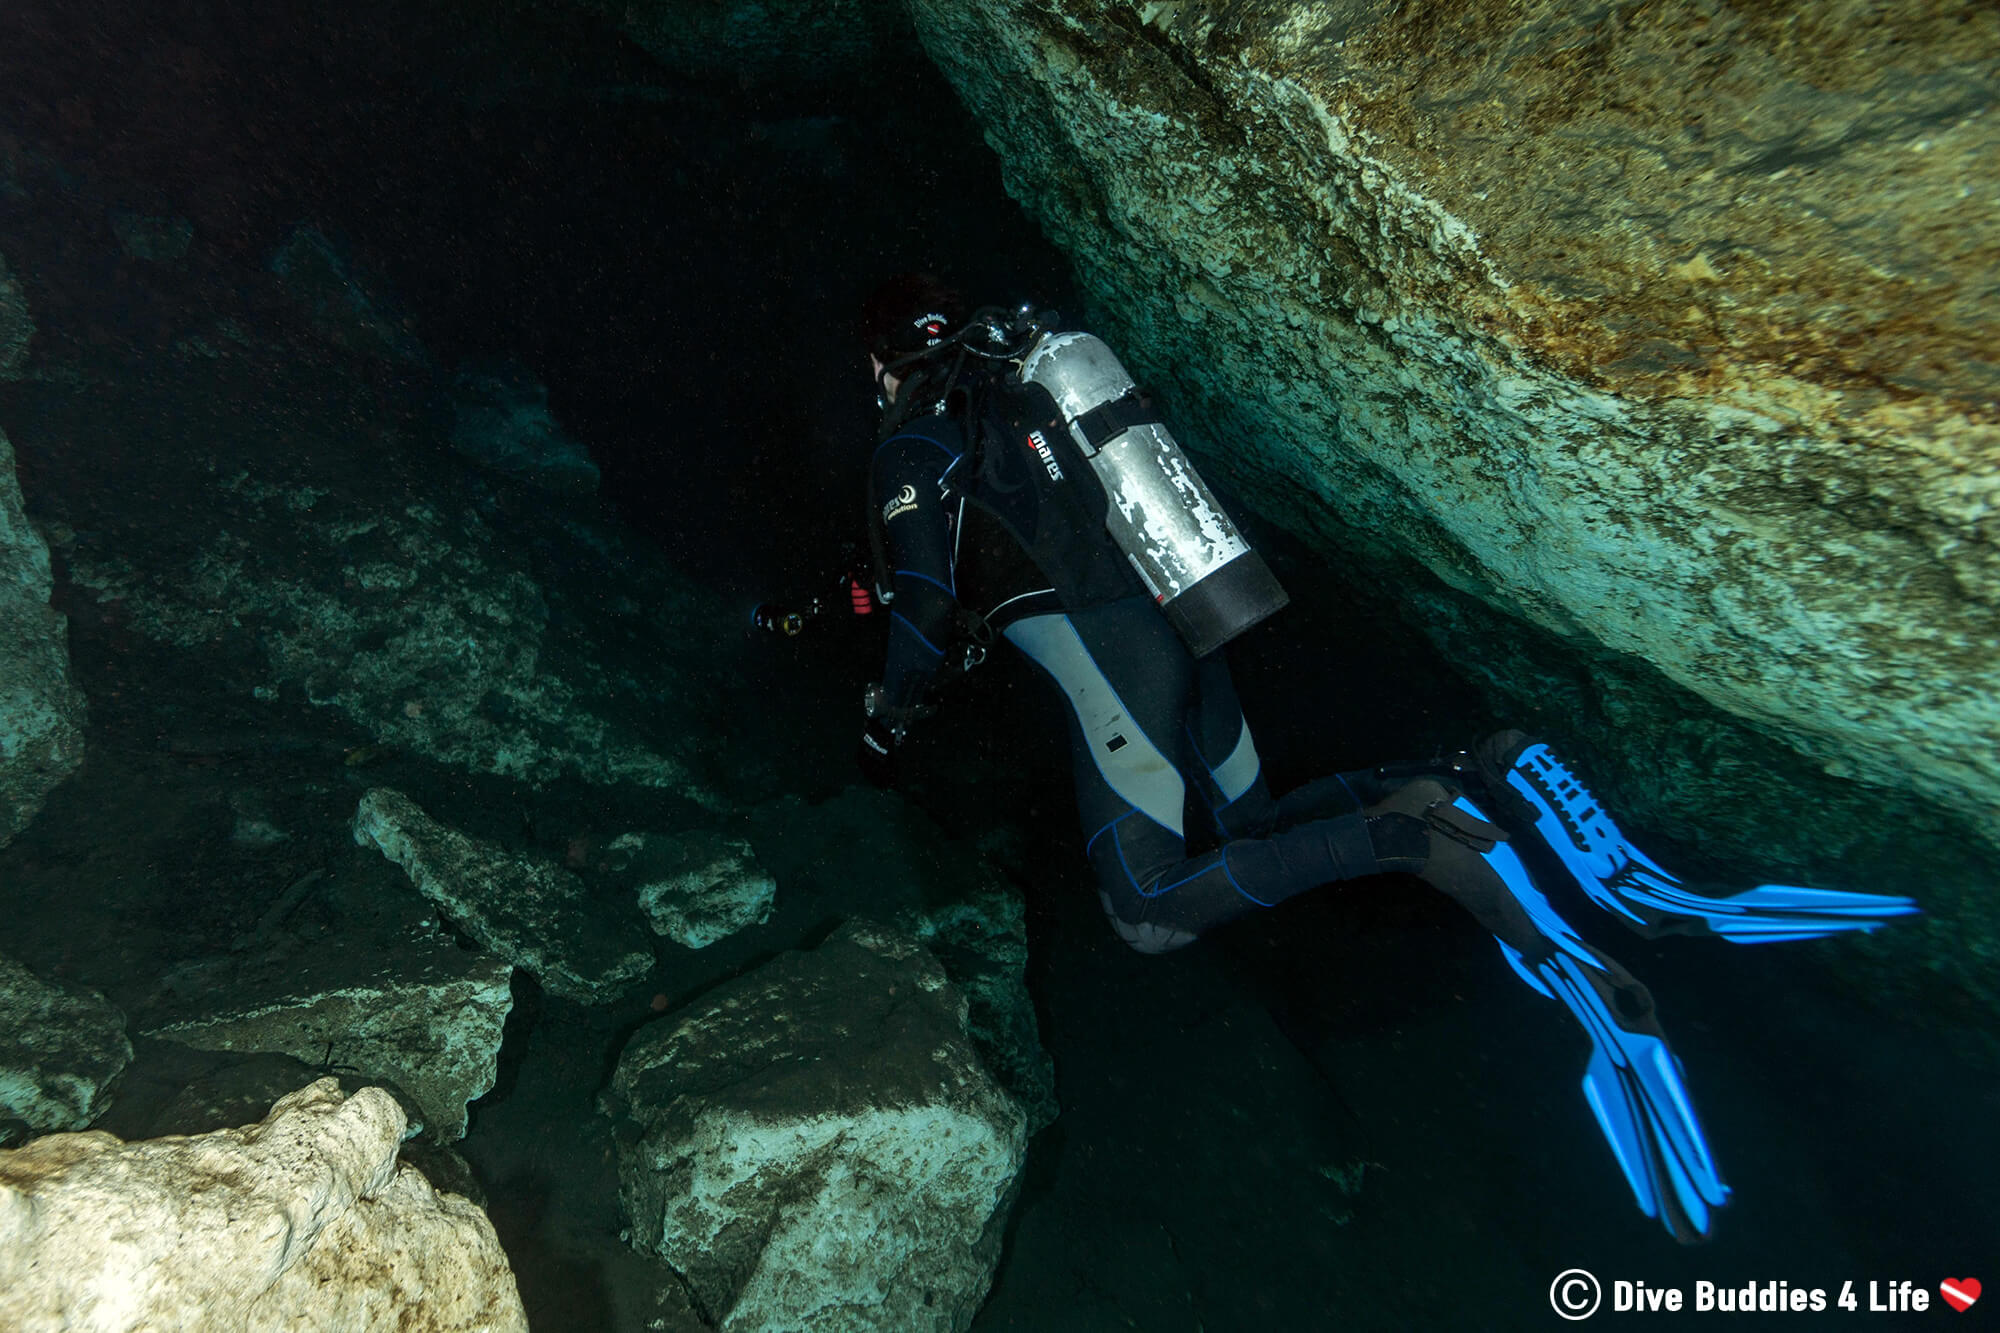 Scuba Joey Looking Into The Blue Grotto Swim Through Cave Deep In The Depths Of The Sinkhole, Florida, USA